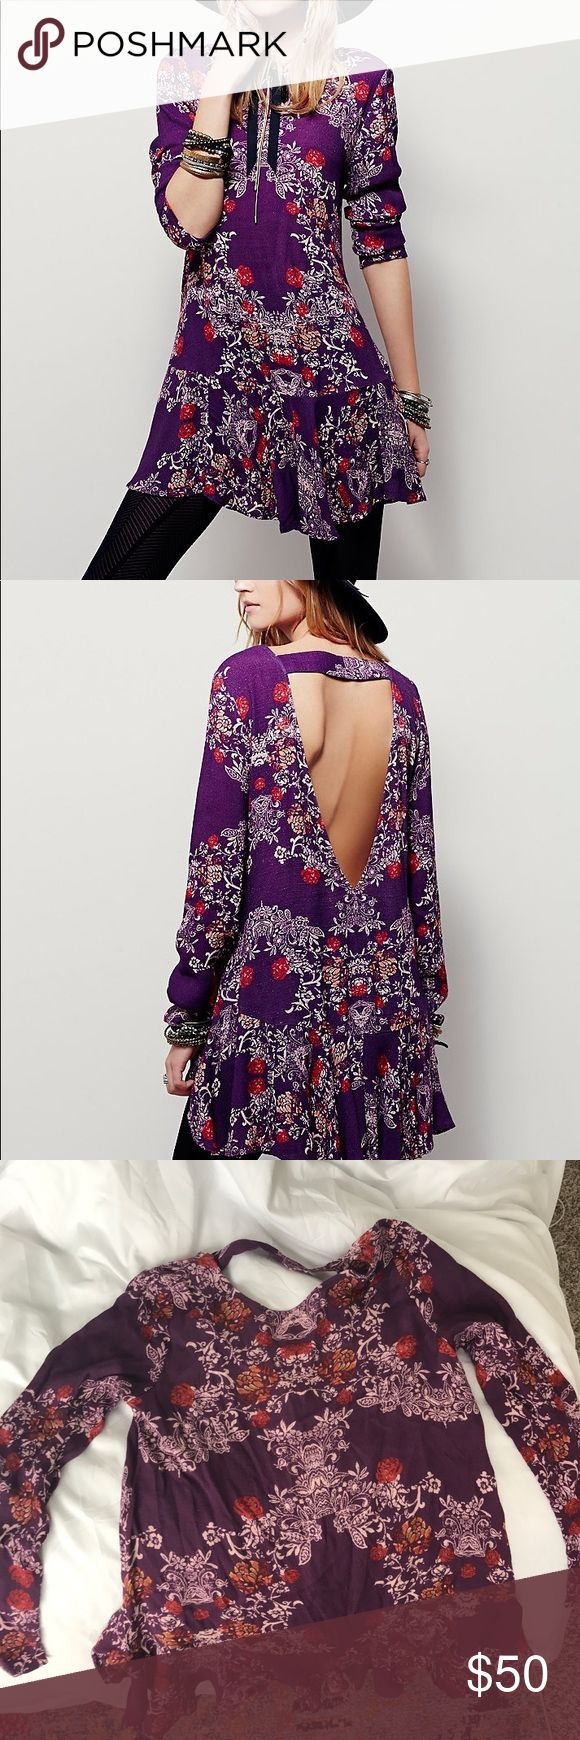 Free People Smooth Talker Floral Print Tunic Size S. Worn once. Free People Tops Tunics